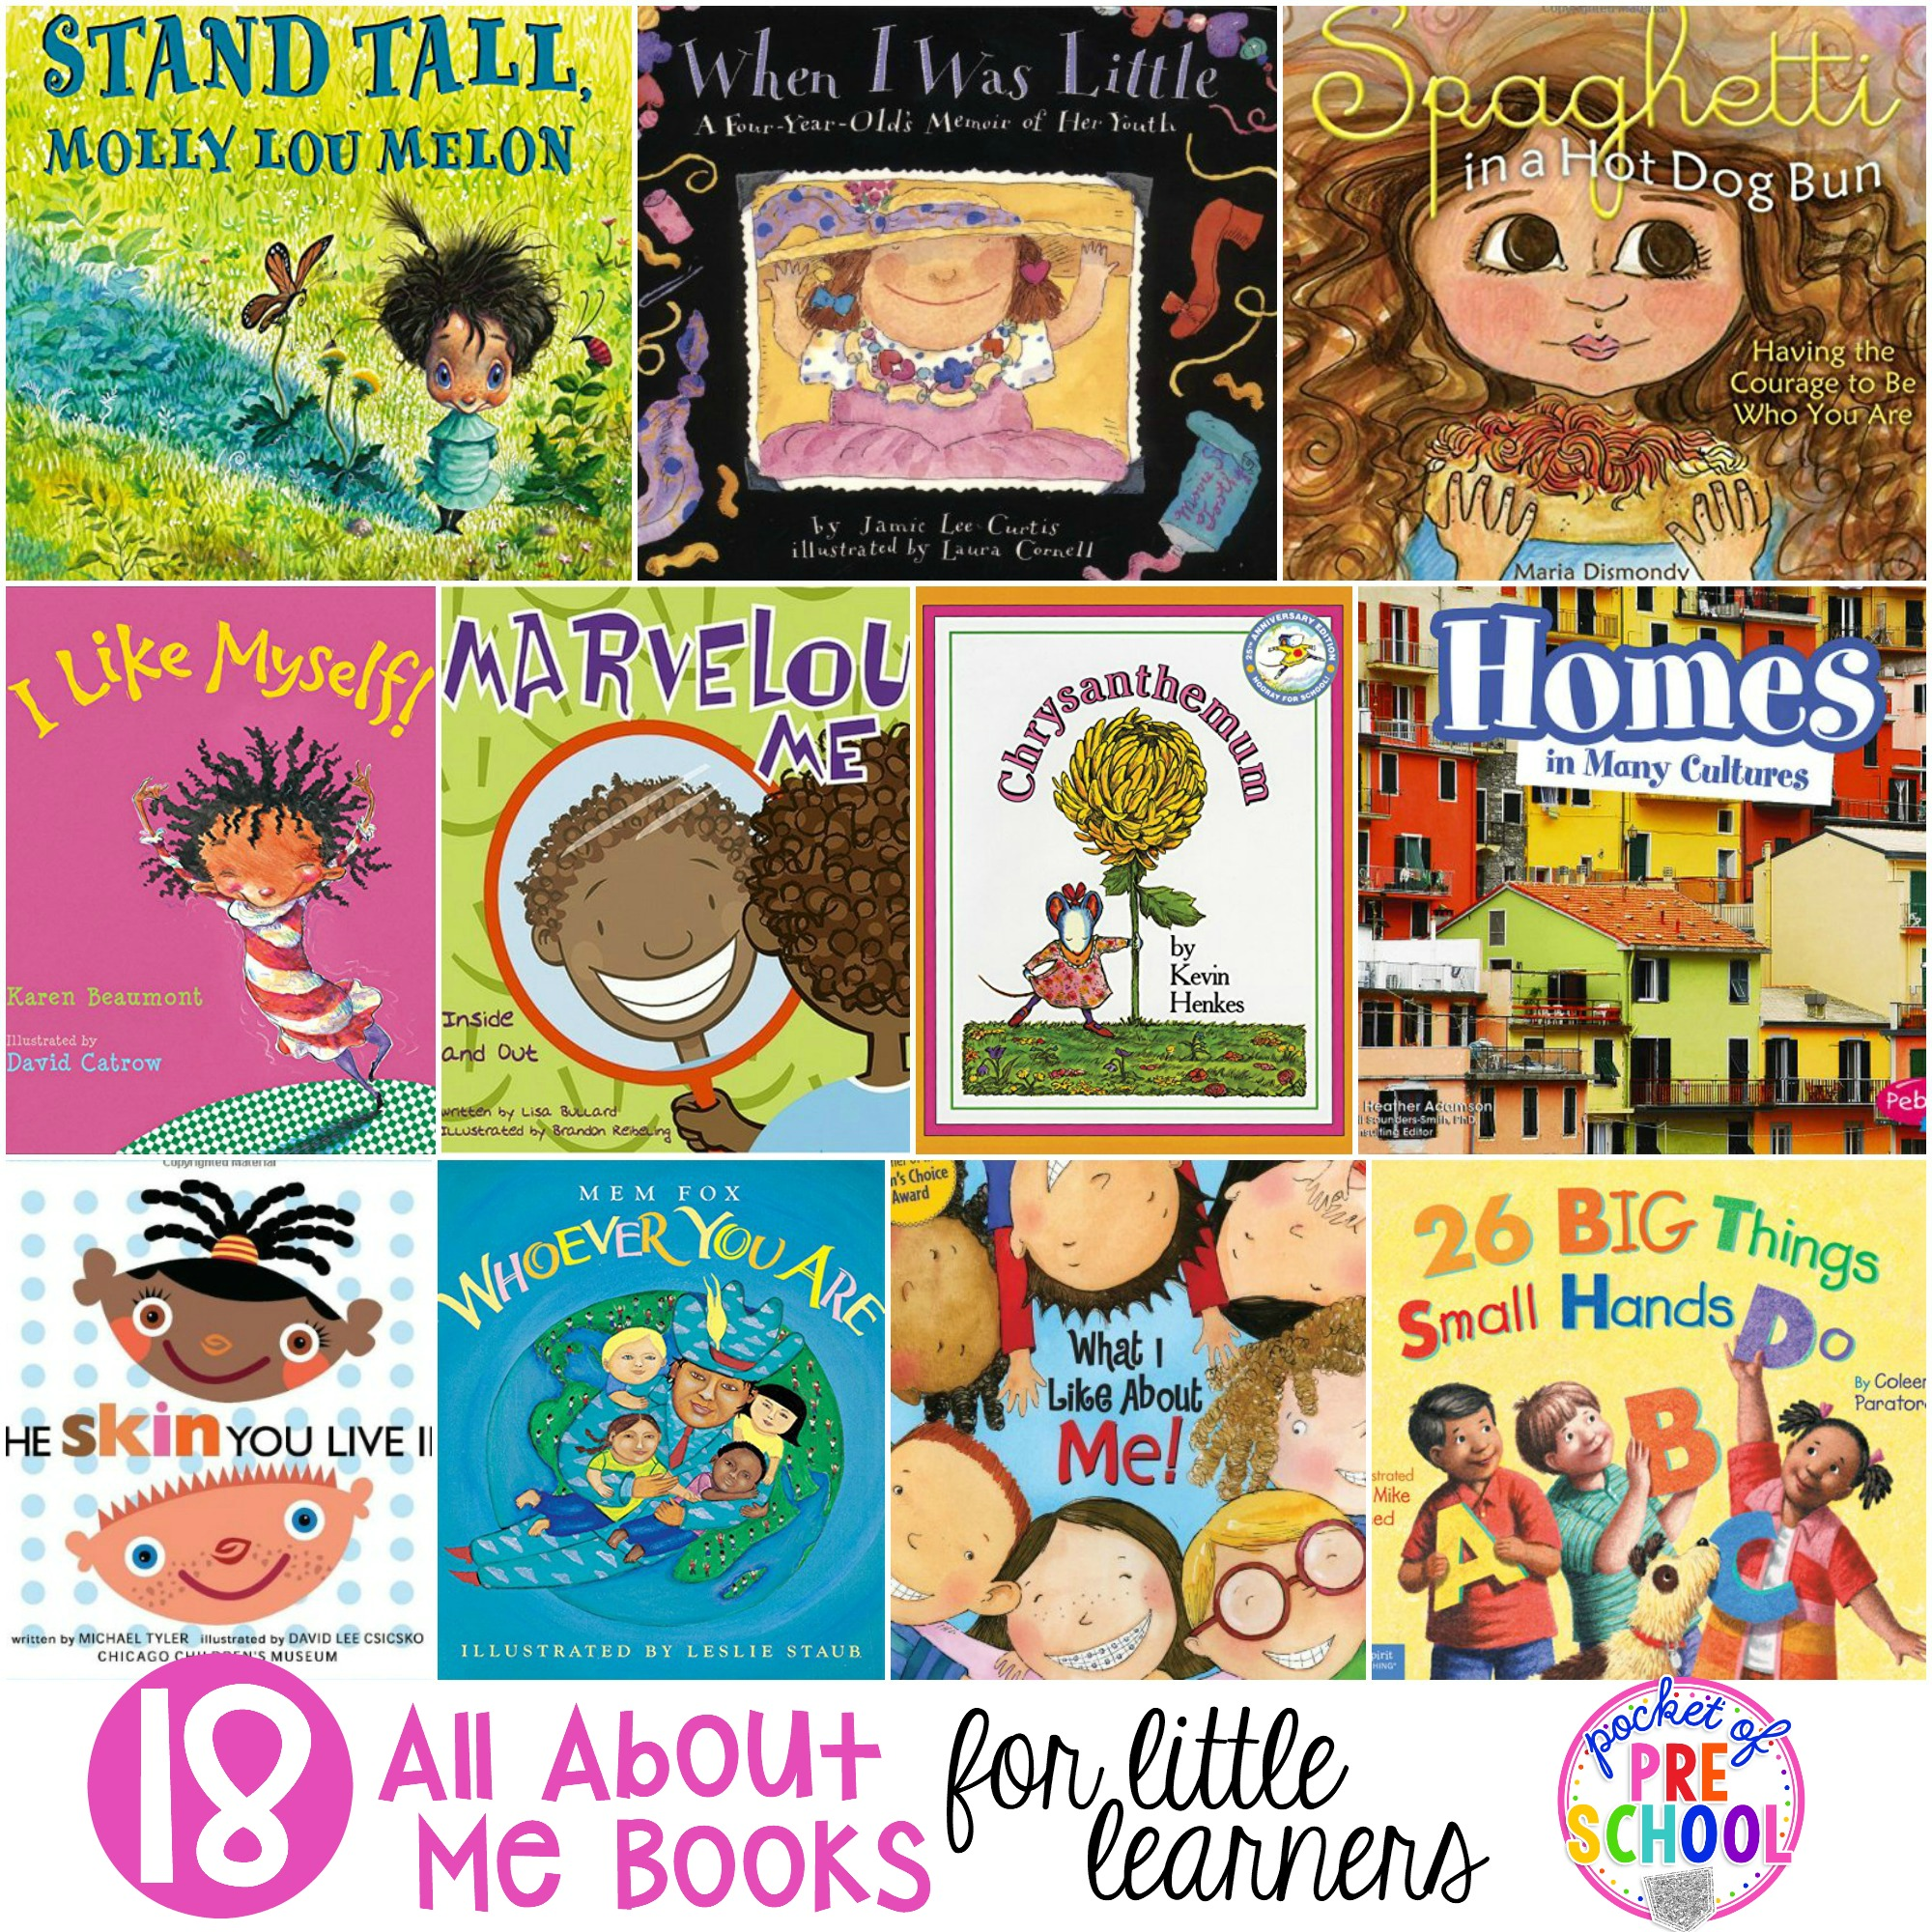 Book Cover School Near Me : All about me books for little learners pocket of preschool